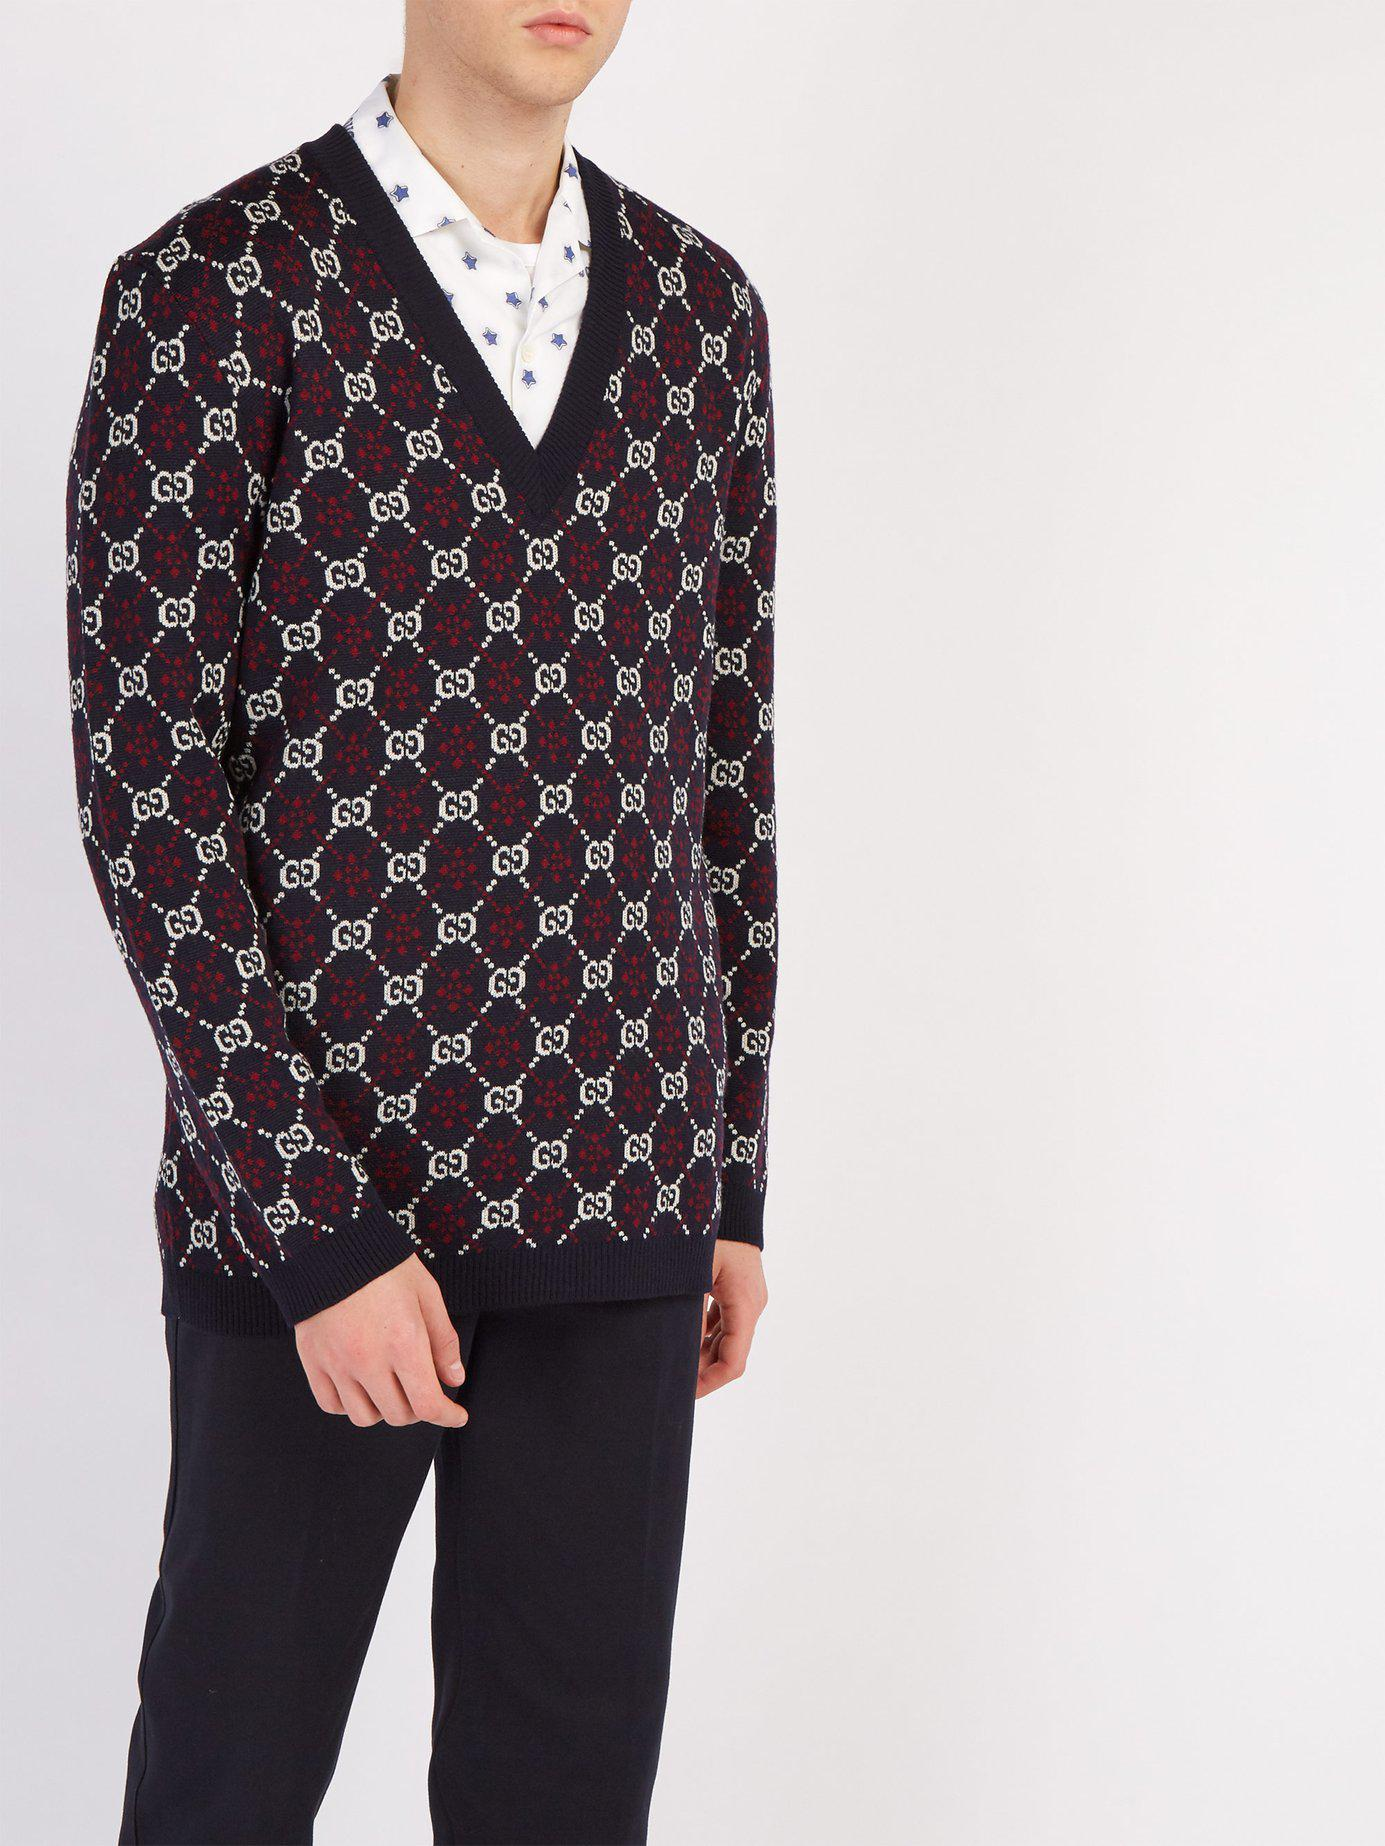 888e1688520 Lyst - Gucci Gg Supreme V Neck Wool Sweater in Blue for Men - Save 38%